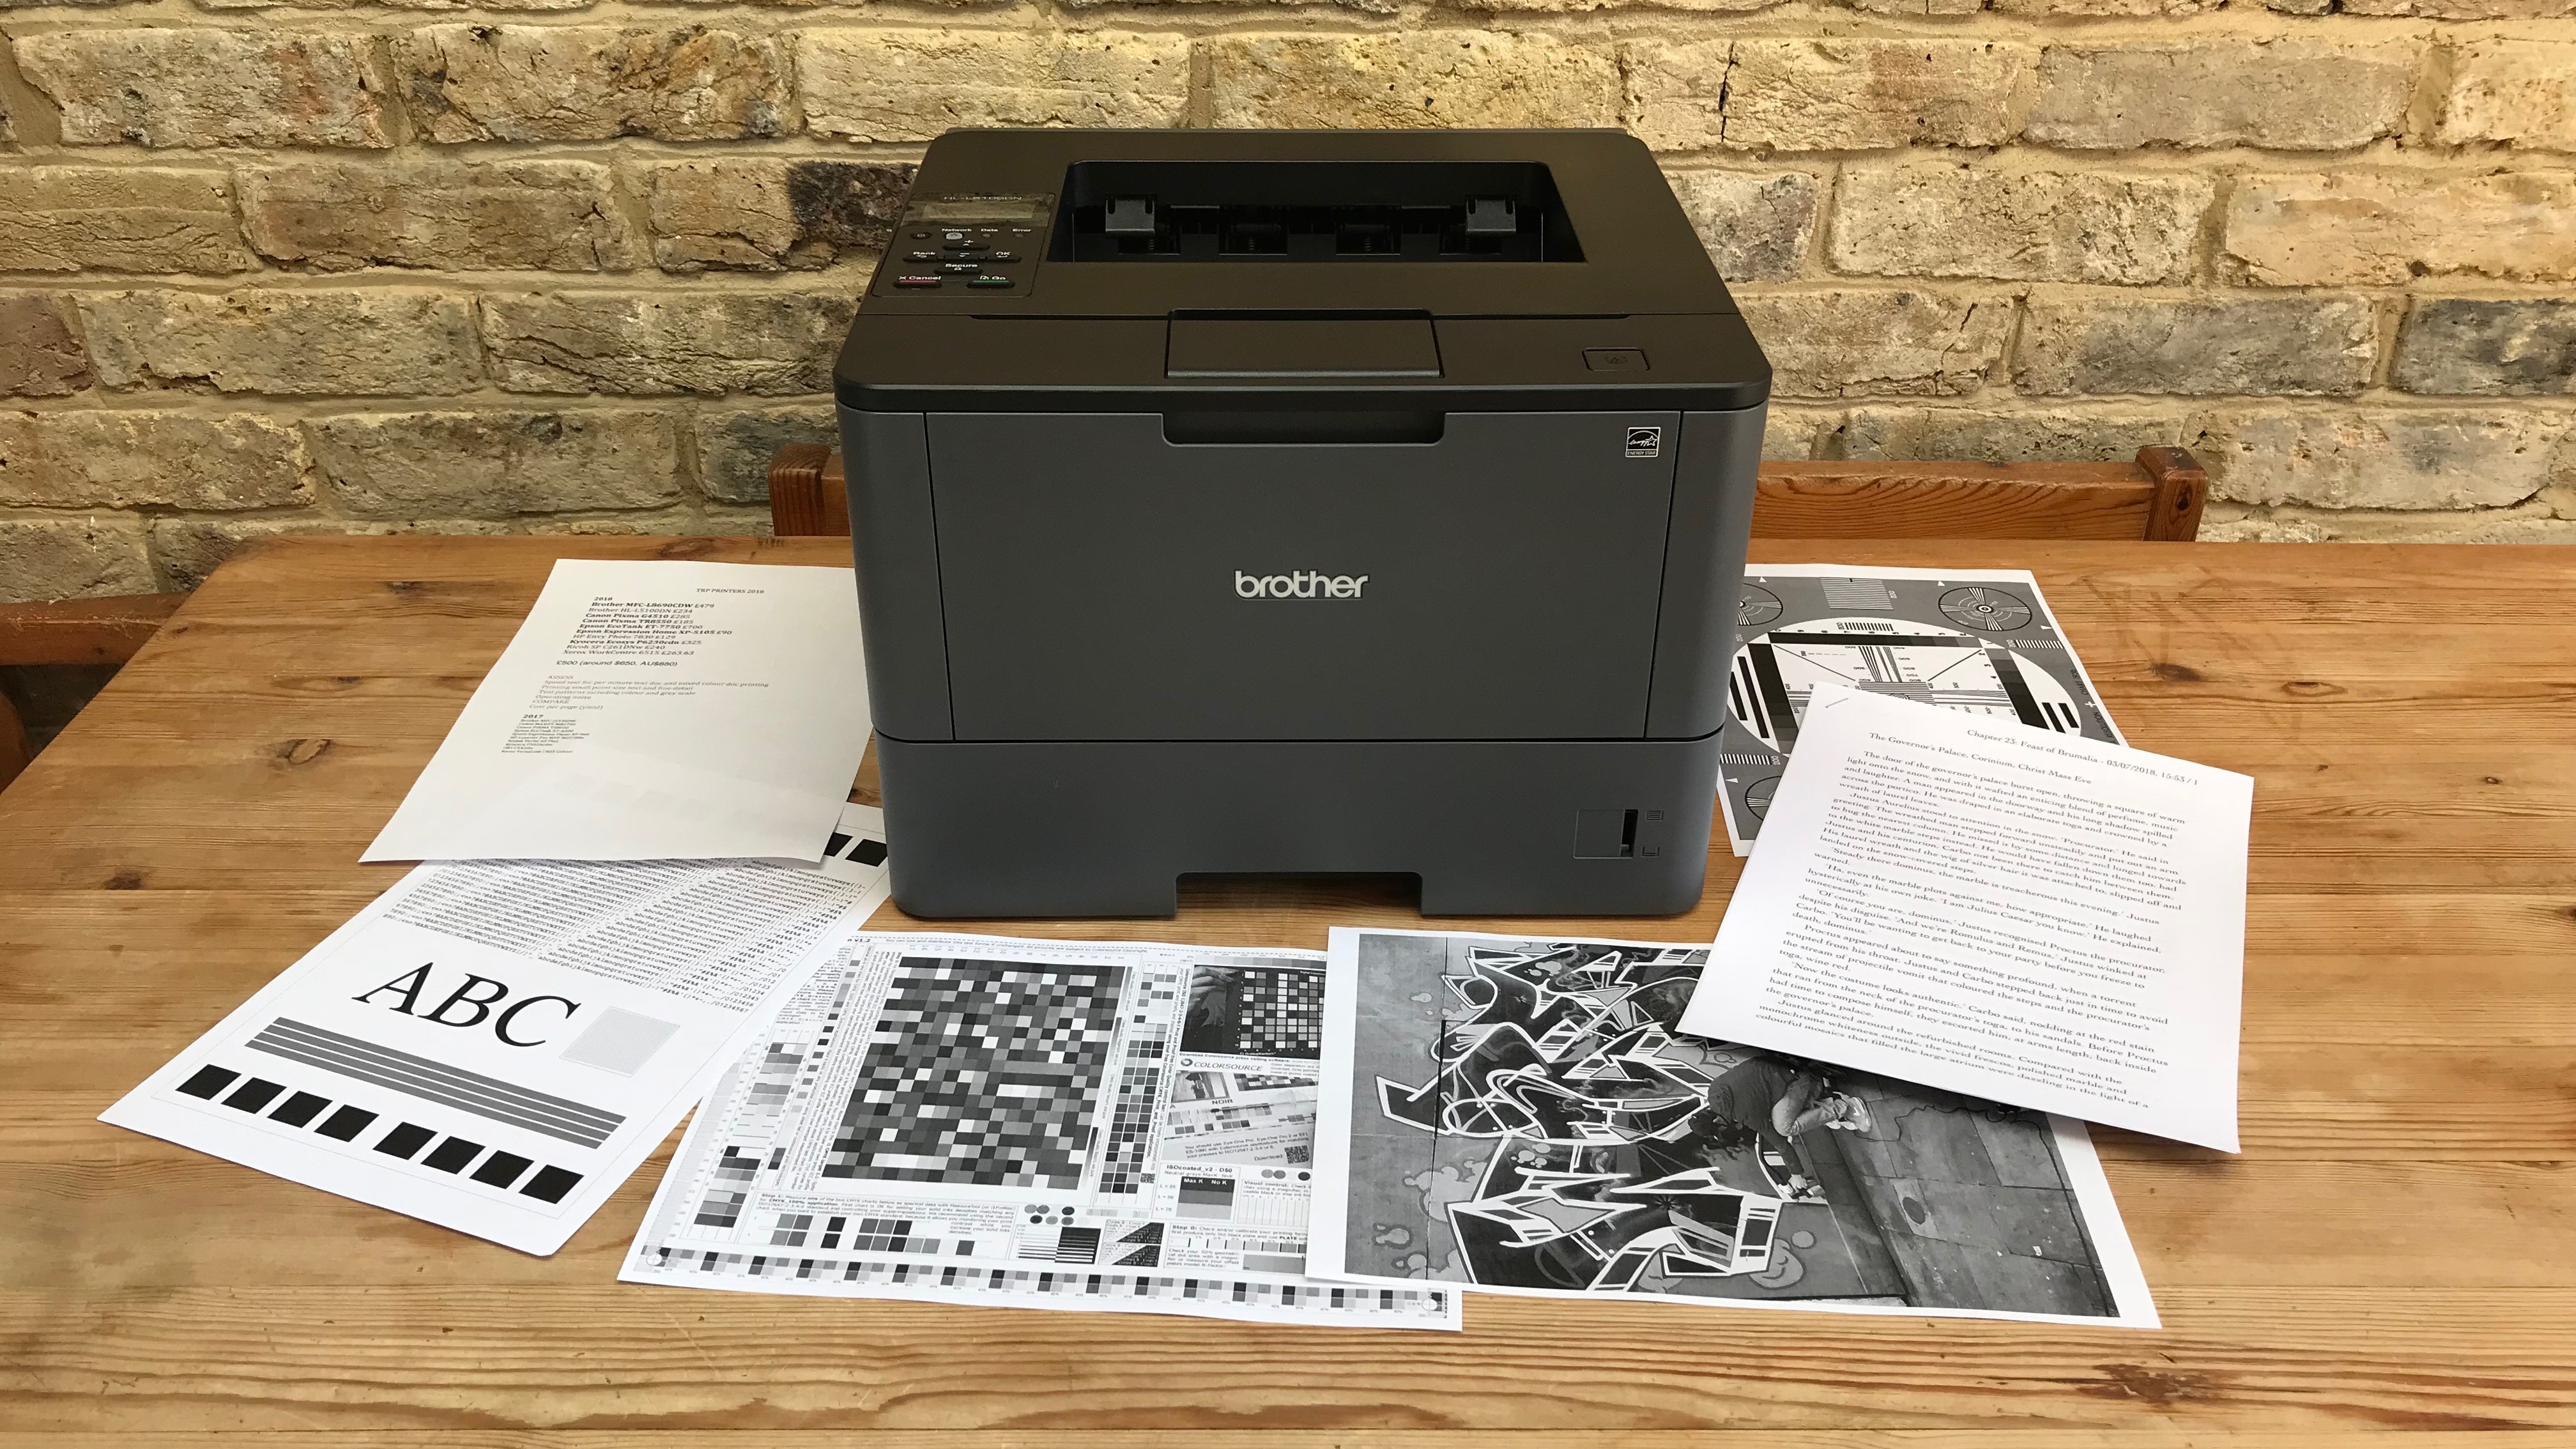 Printer with test pages